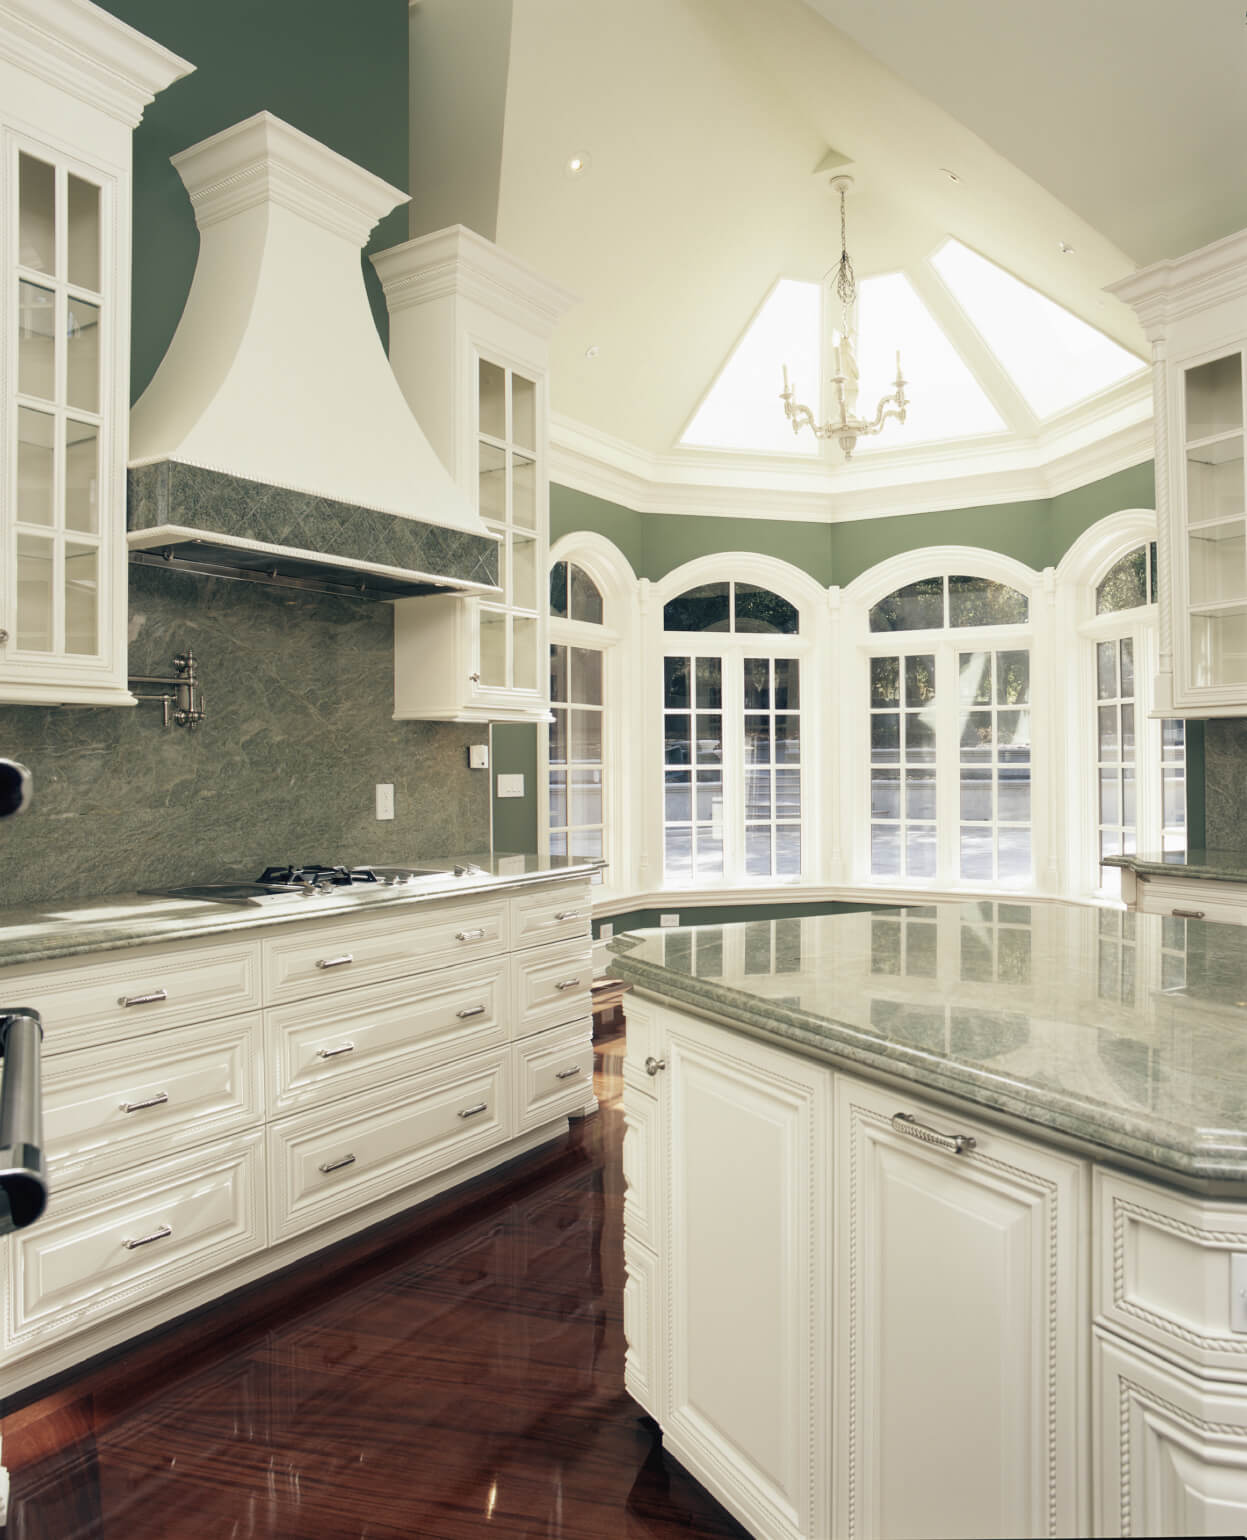 41 White Kitchen Interior Design & Decor Ideas (PICTURES)